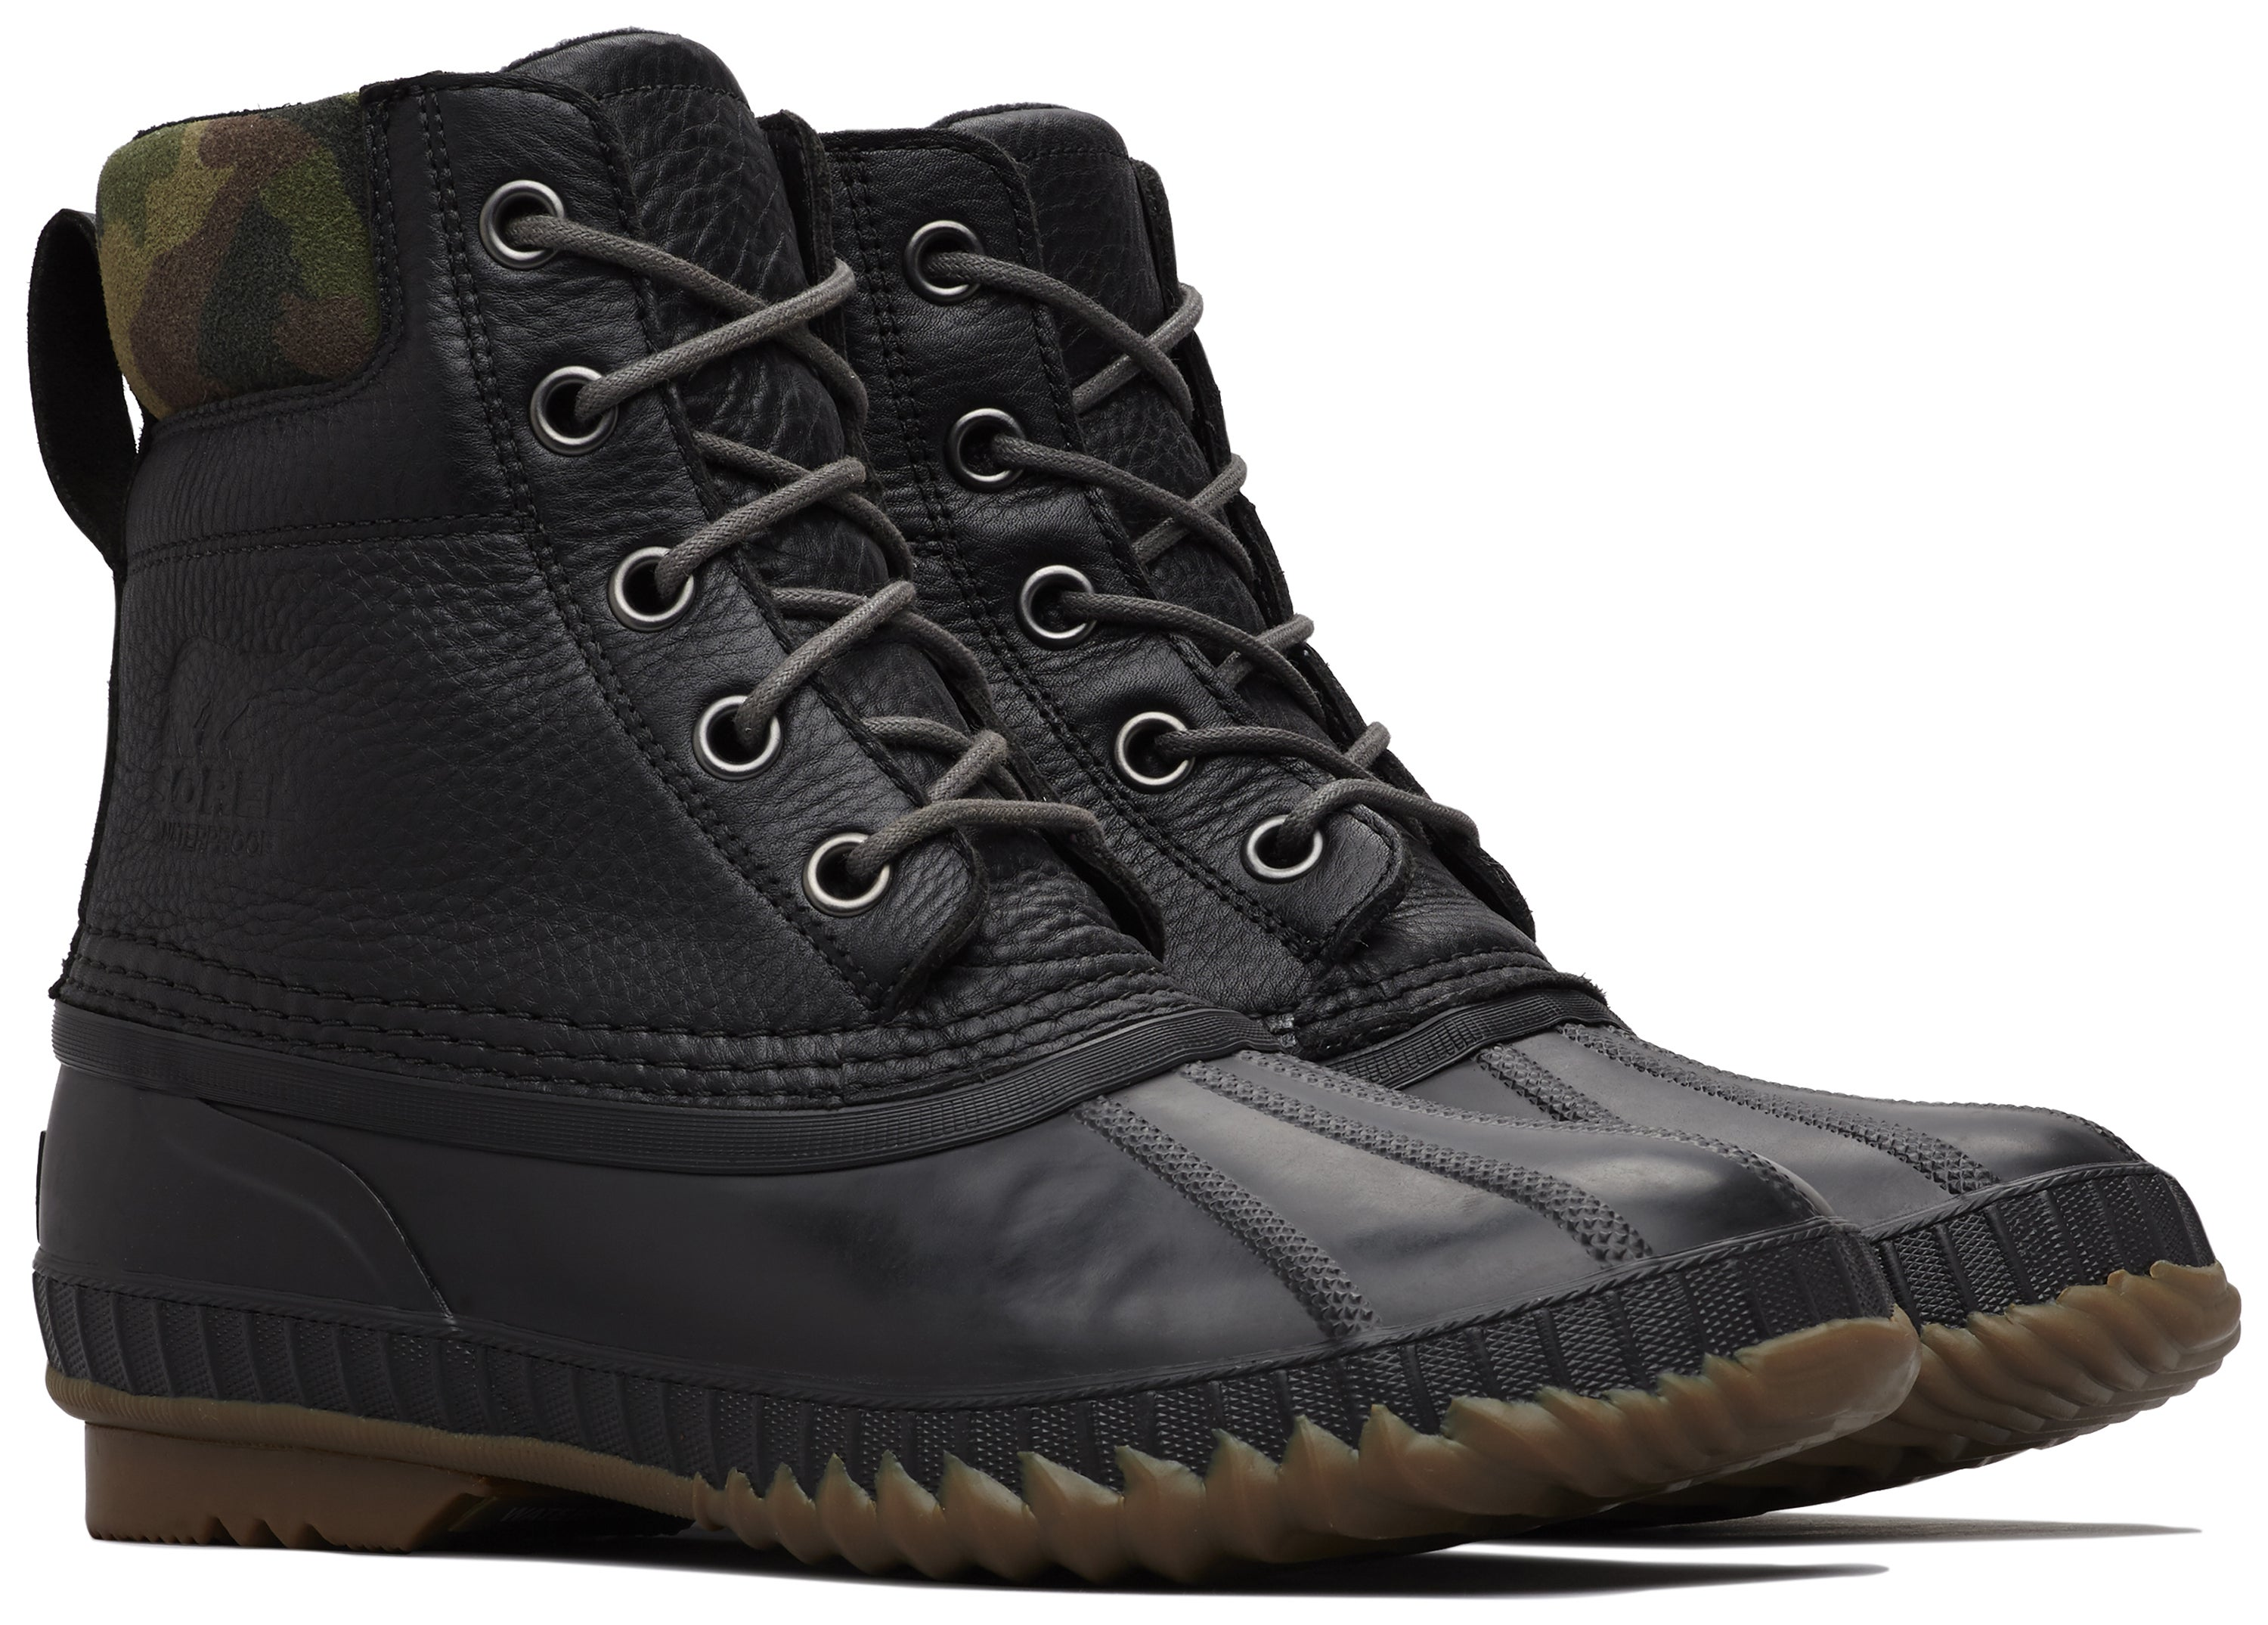 4f71e9f8c26 Sorel Cheyanne II Men's Boots - Black,alpine Tundra | Country Attire